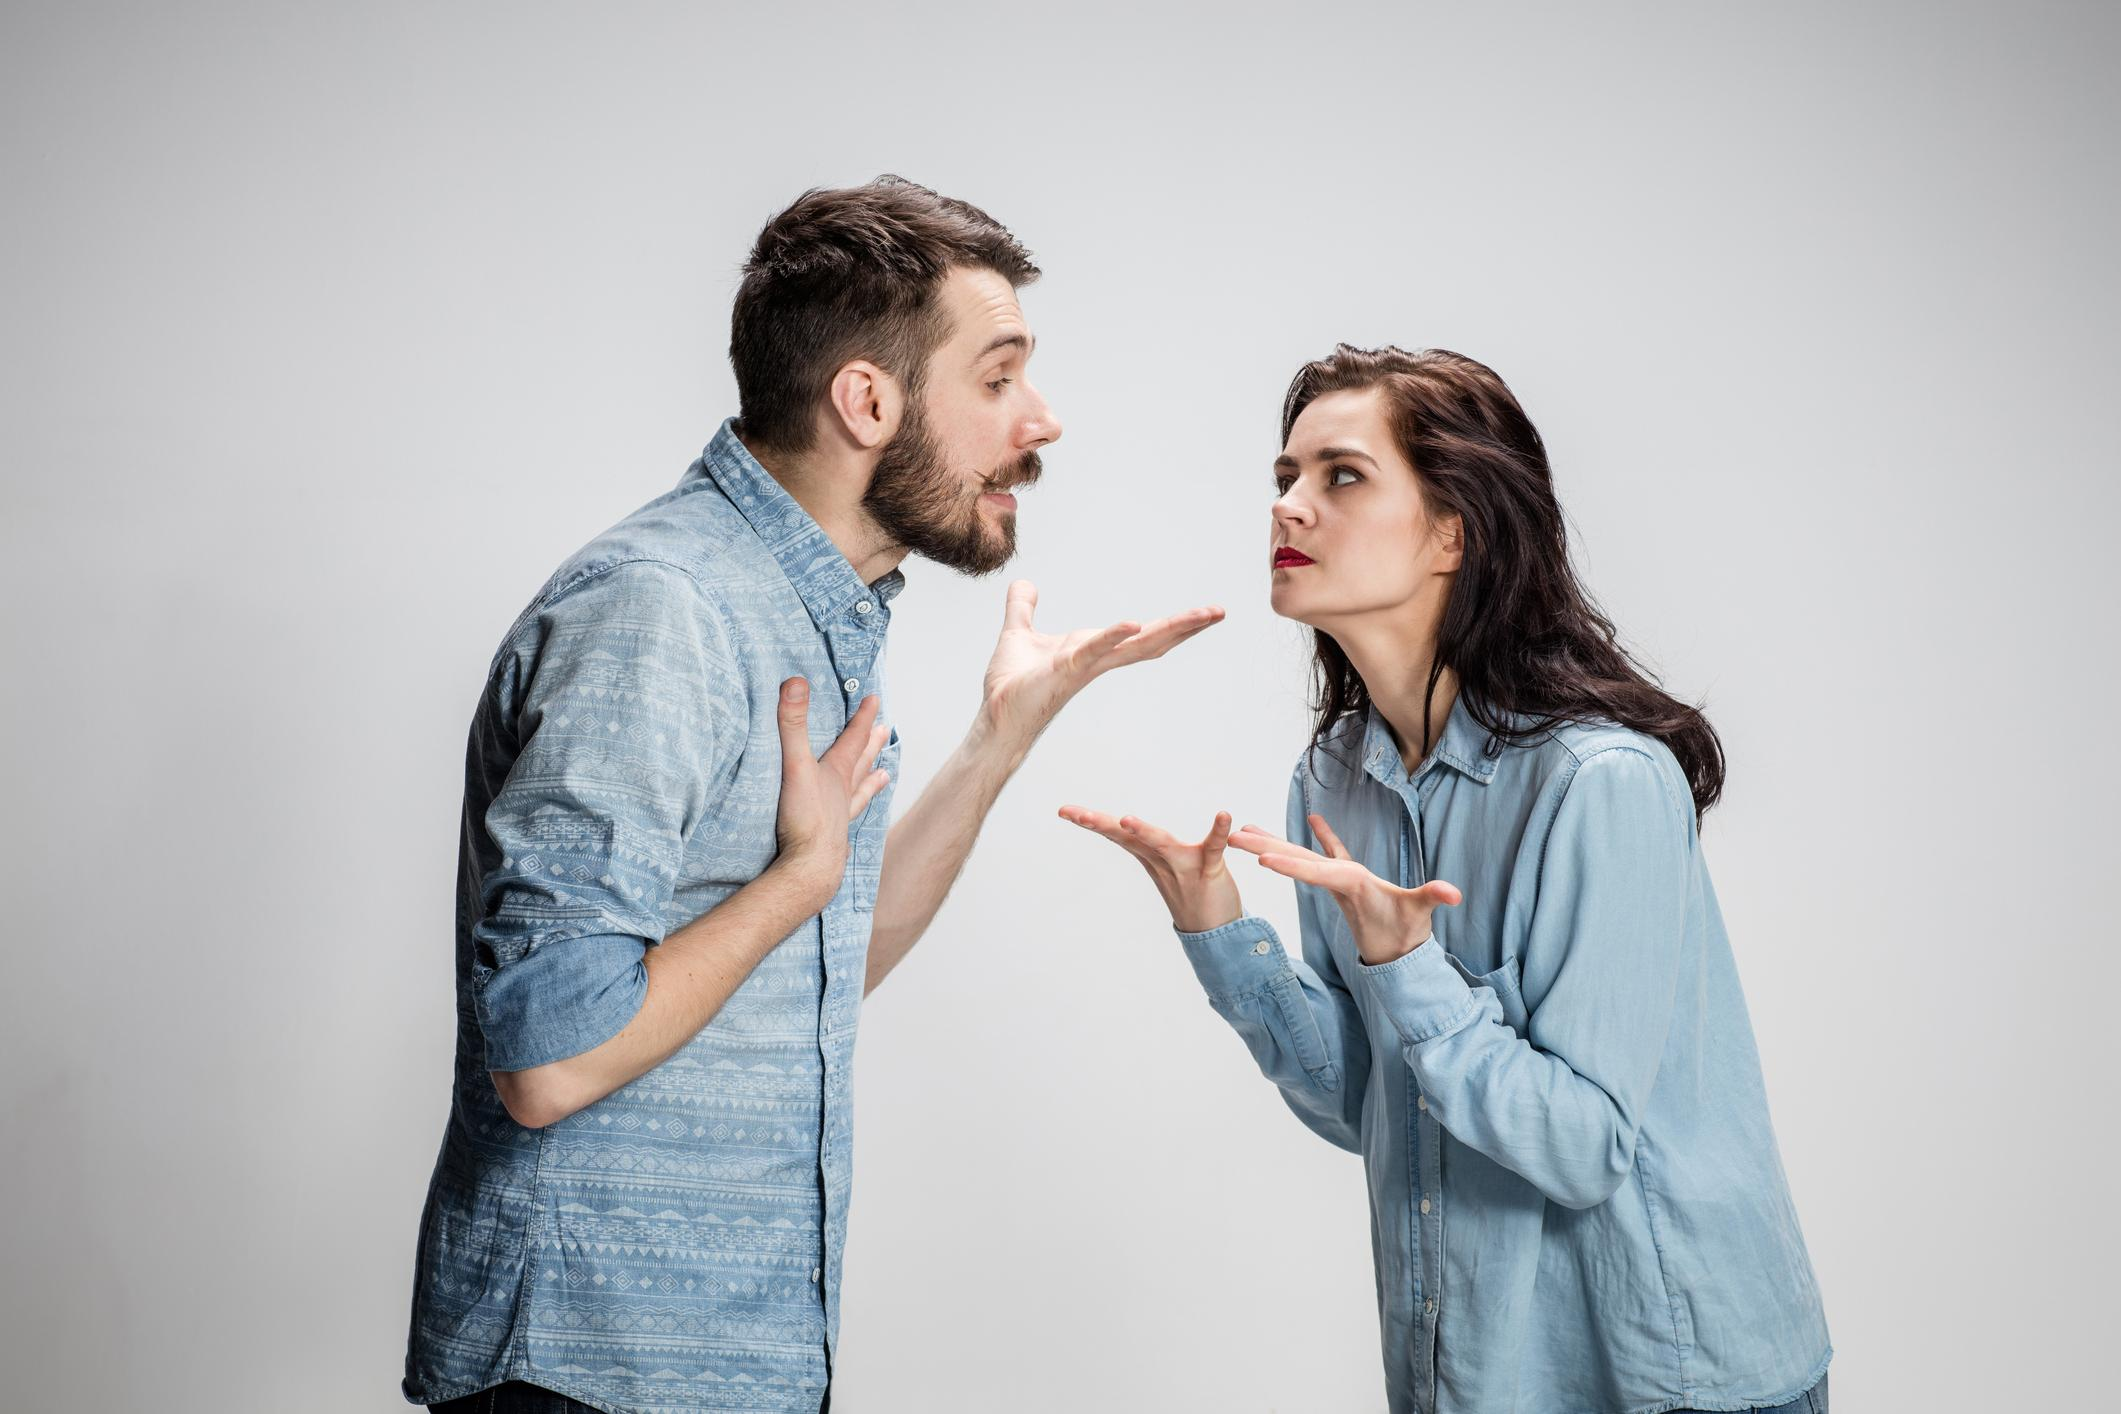 Couple arguing